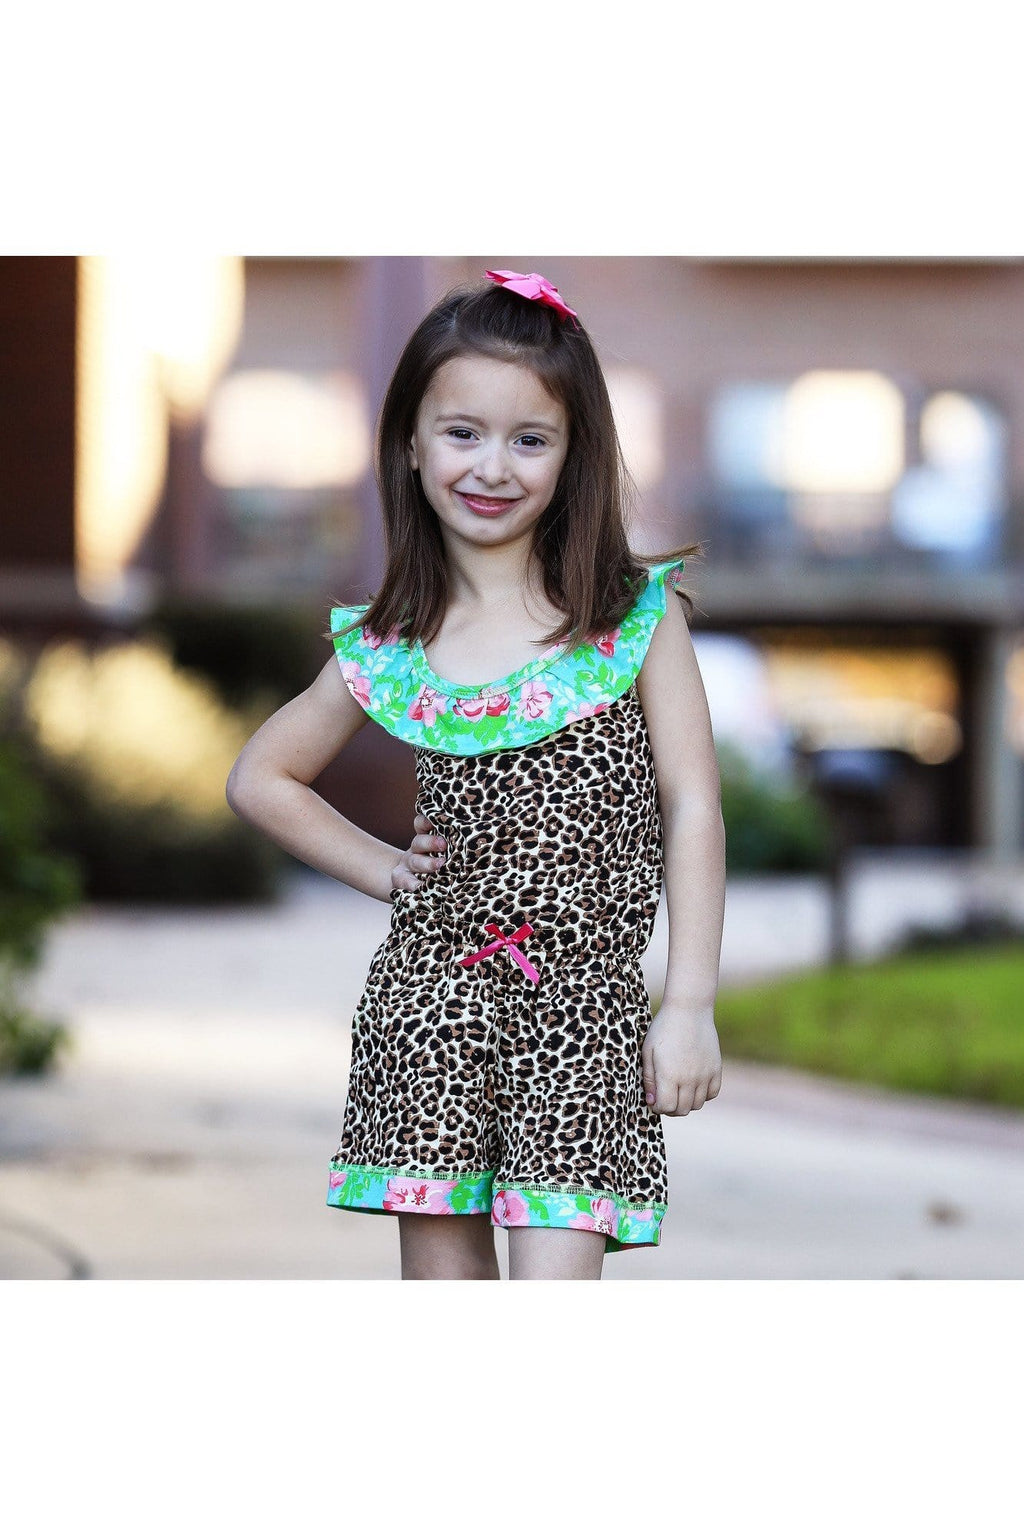 AnnLoren Little Big Girls Jumpsuit Leopard Floral Spring Summer One Pc Boutique Clothing Sizes 2/3T - 11/12 - Himelhoch's